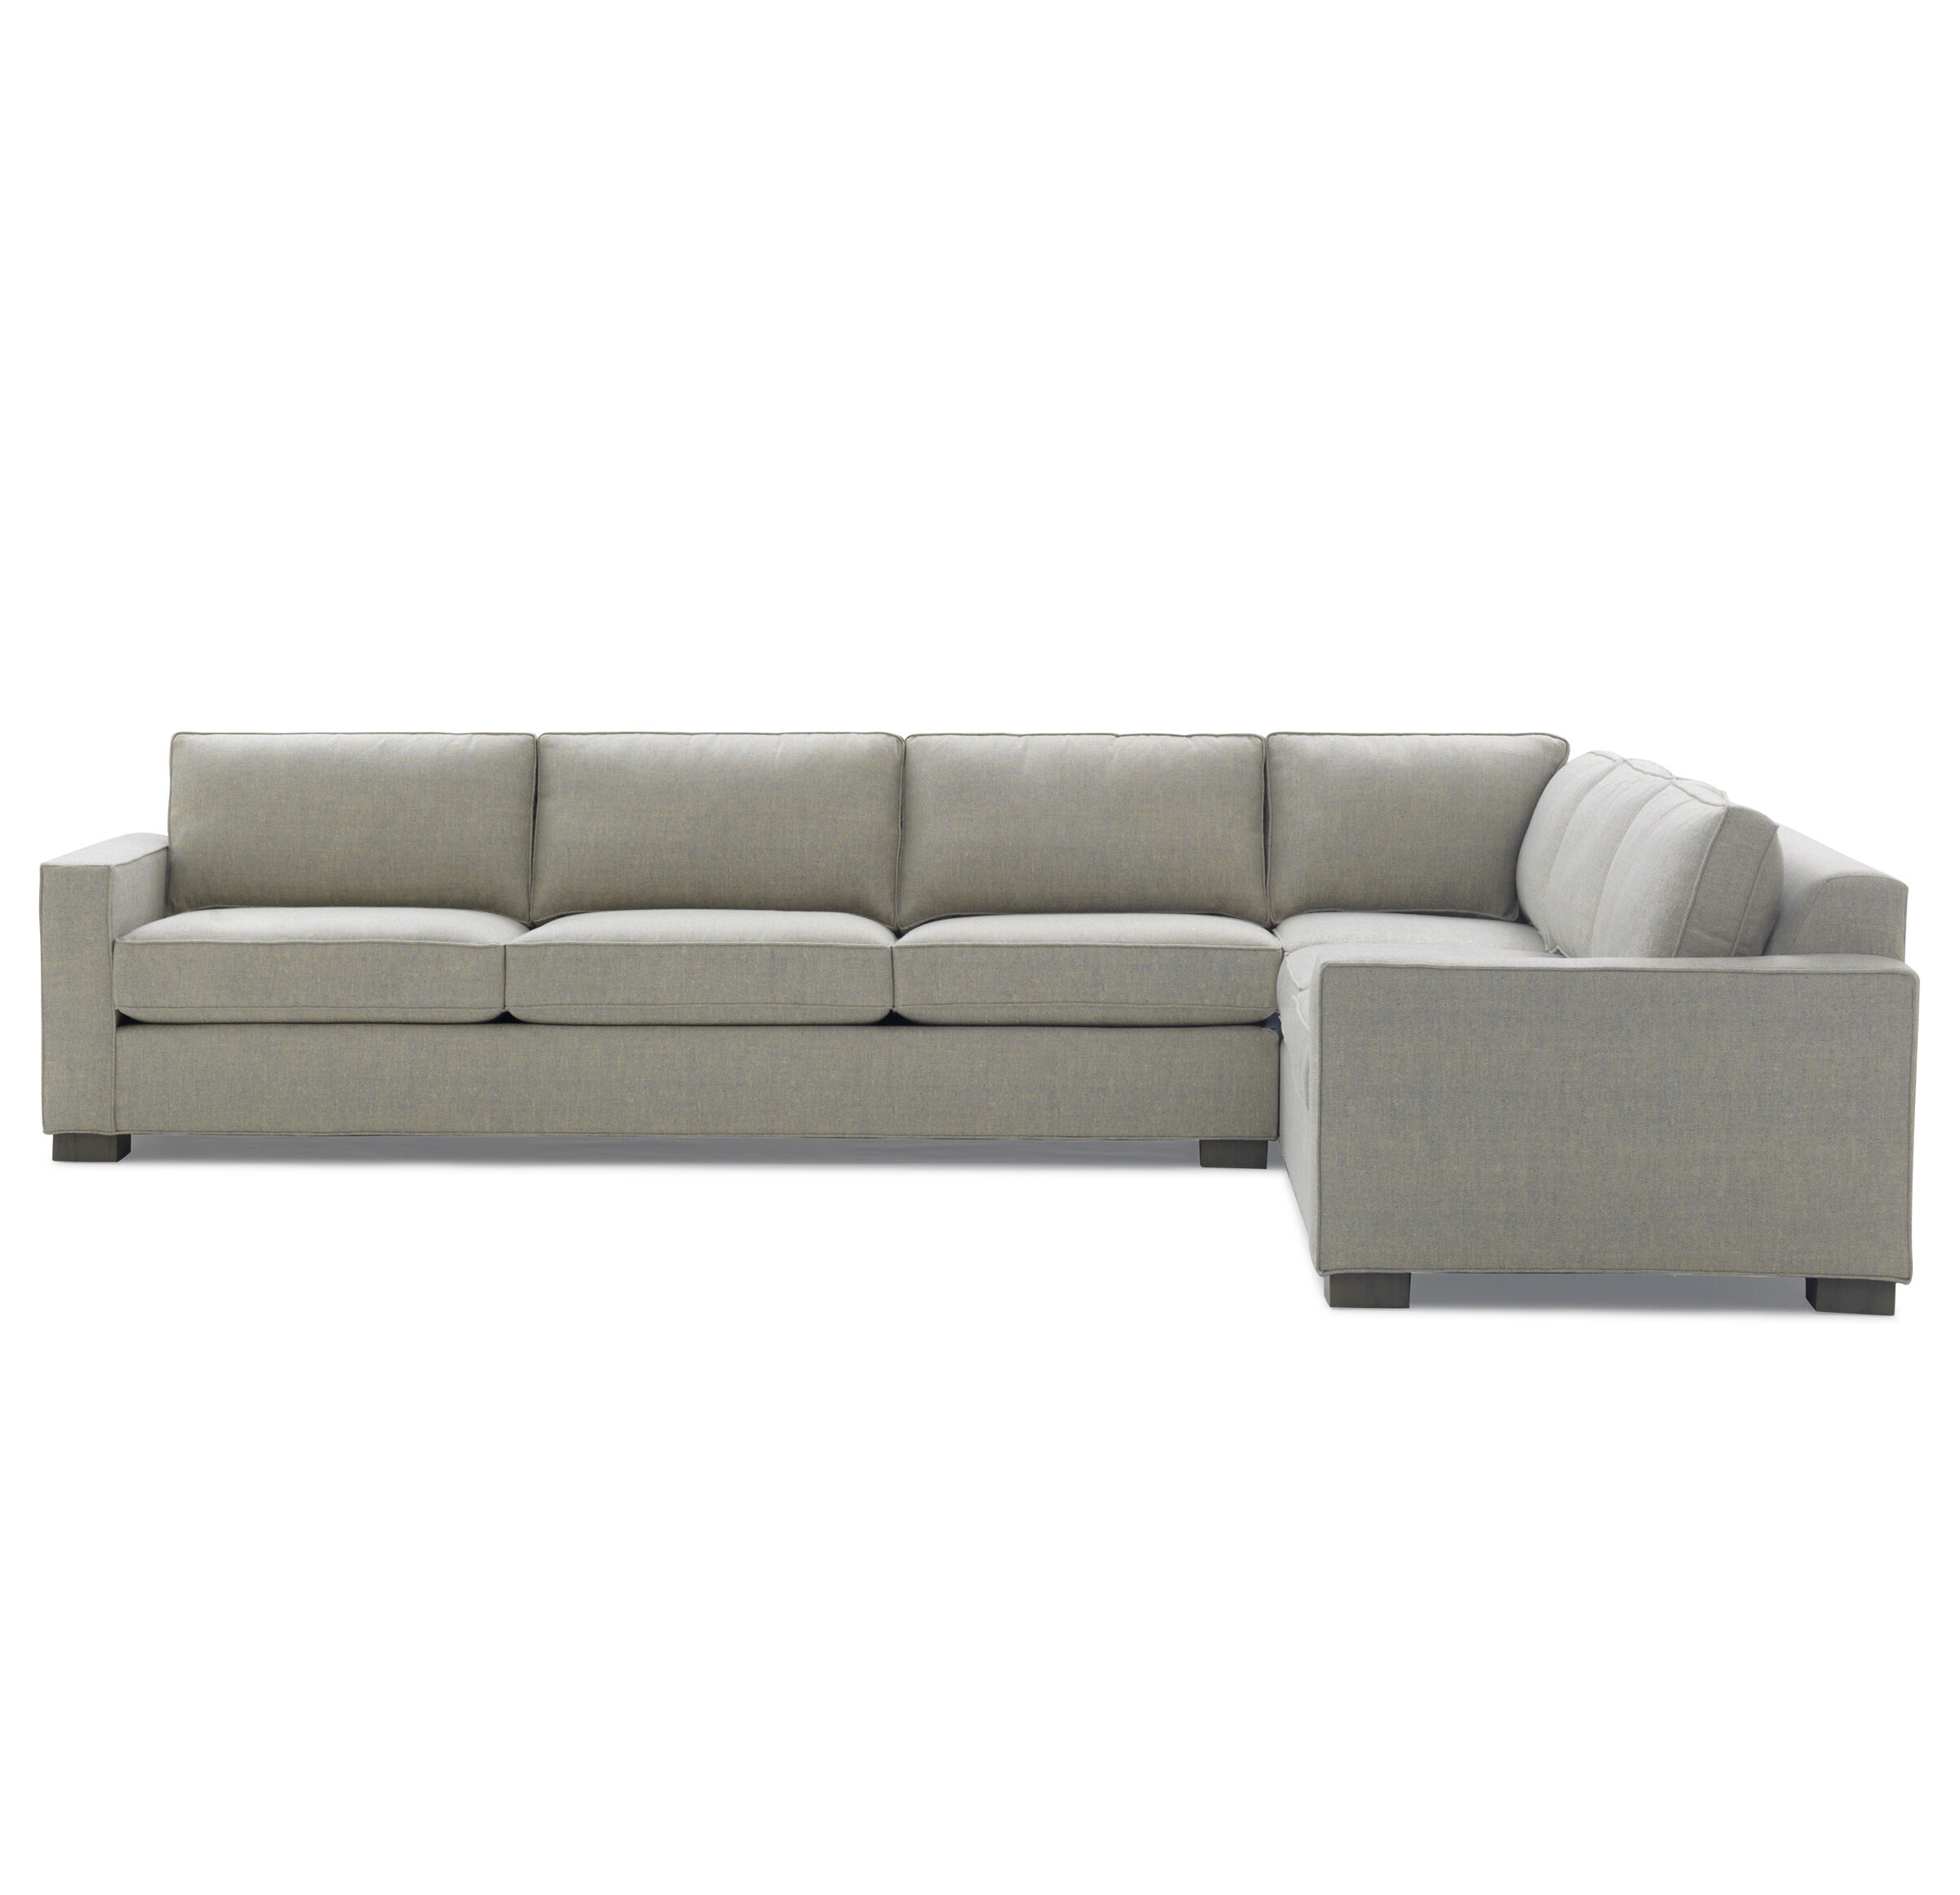 right angled sectional sofa sleeper at rooms to go carson